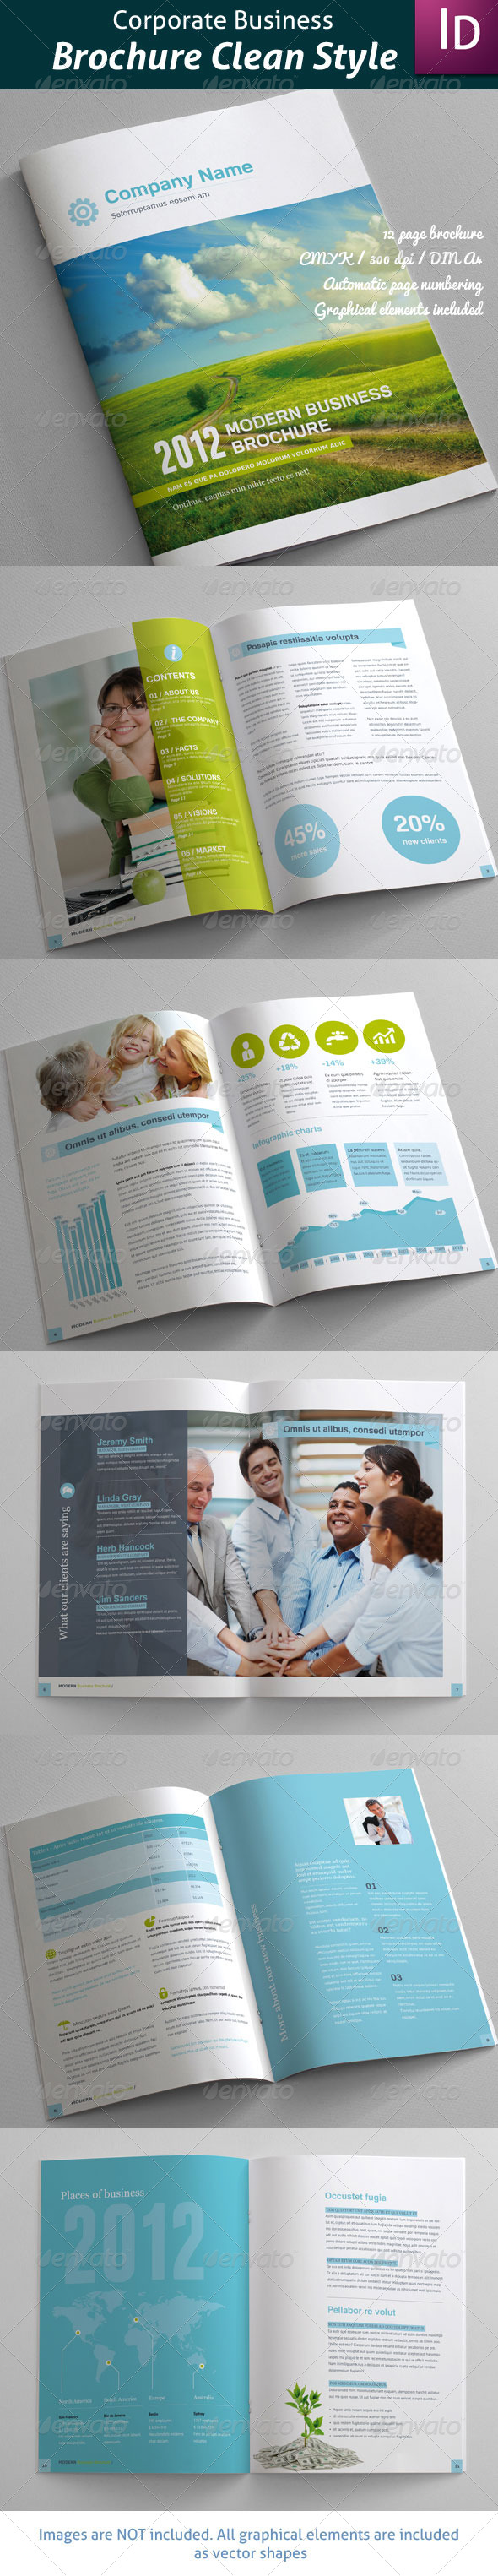 Business Brochure Clean Style - Corporate Brochures